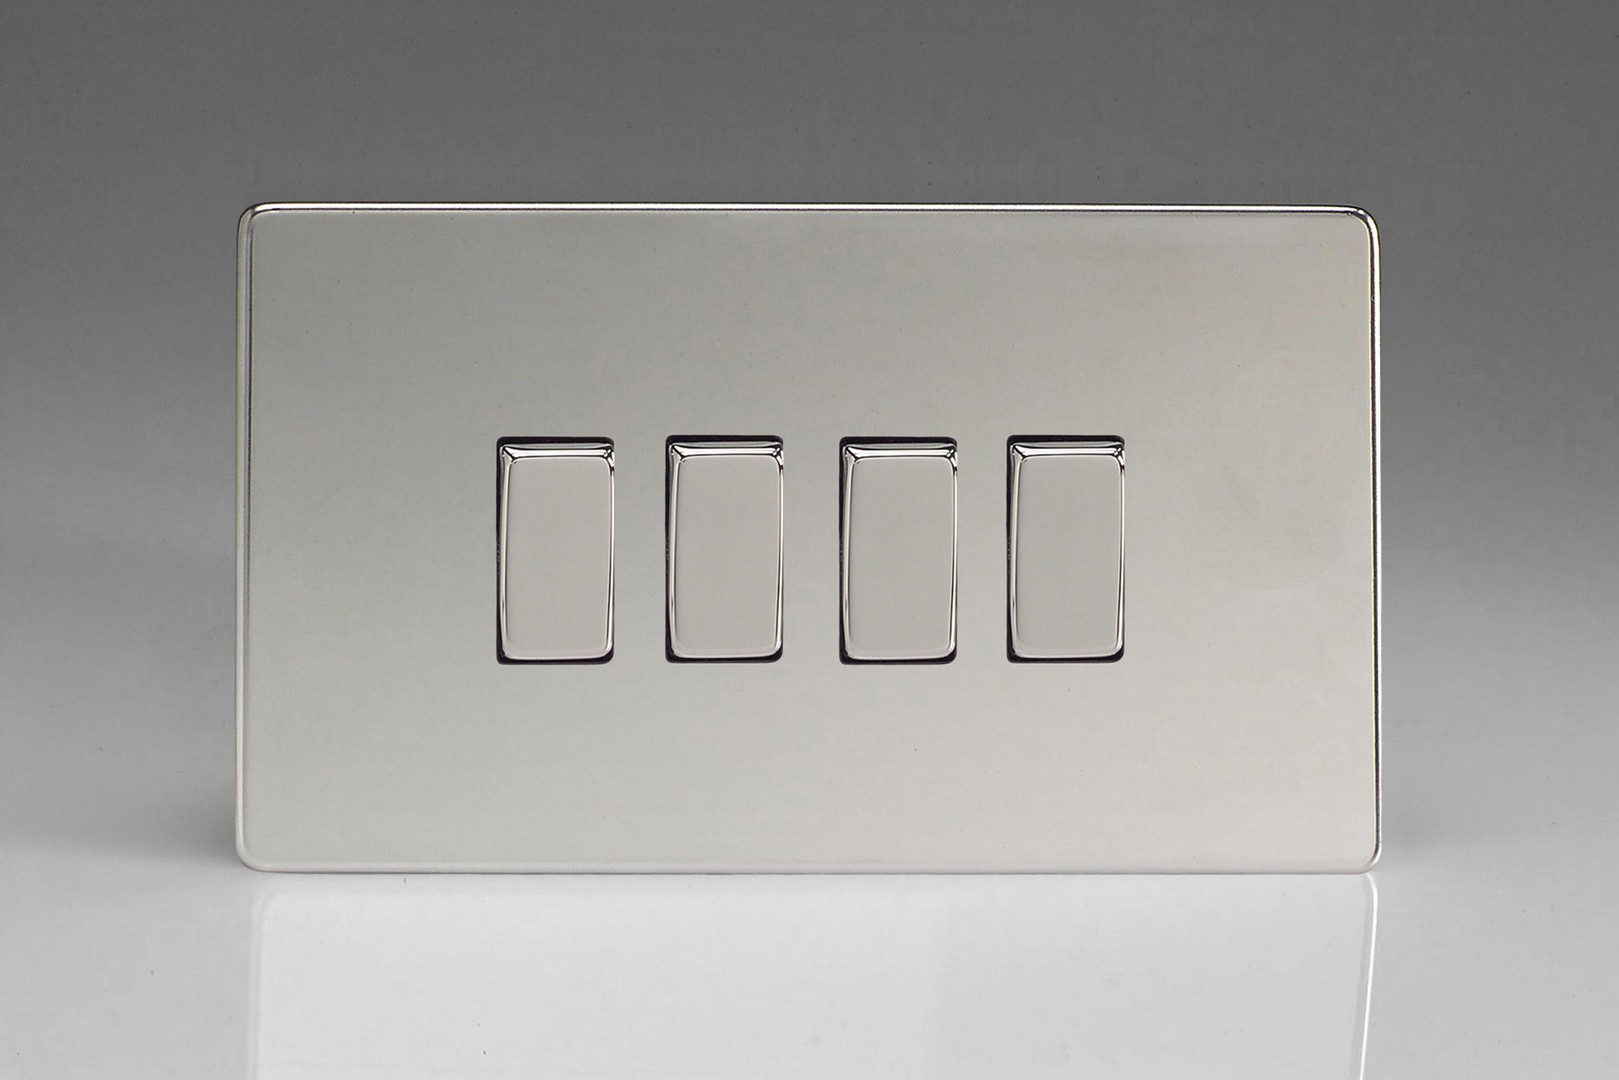 Rocker Switch Plate Alluring Flat Plate Screwless Polished Chrome 4Gang 10A 1 Or 2Way Rocker Design Inspiration